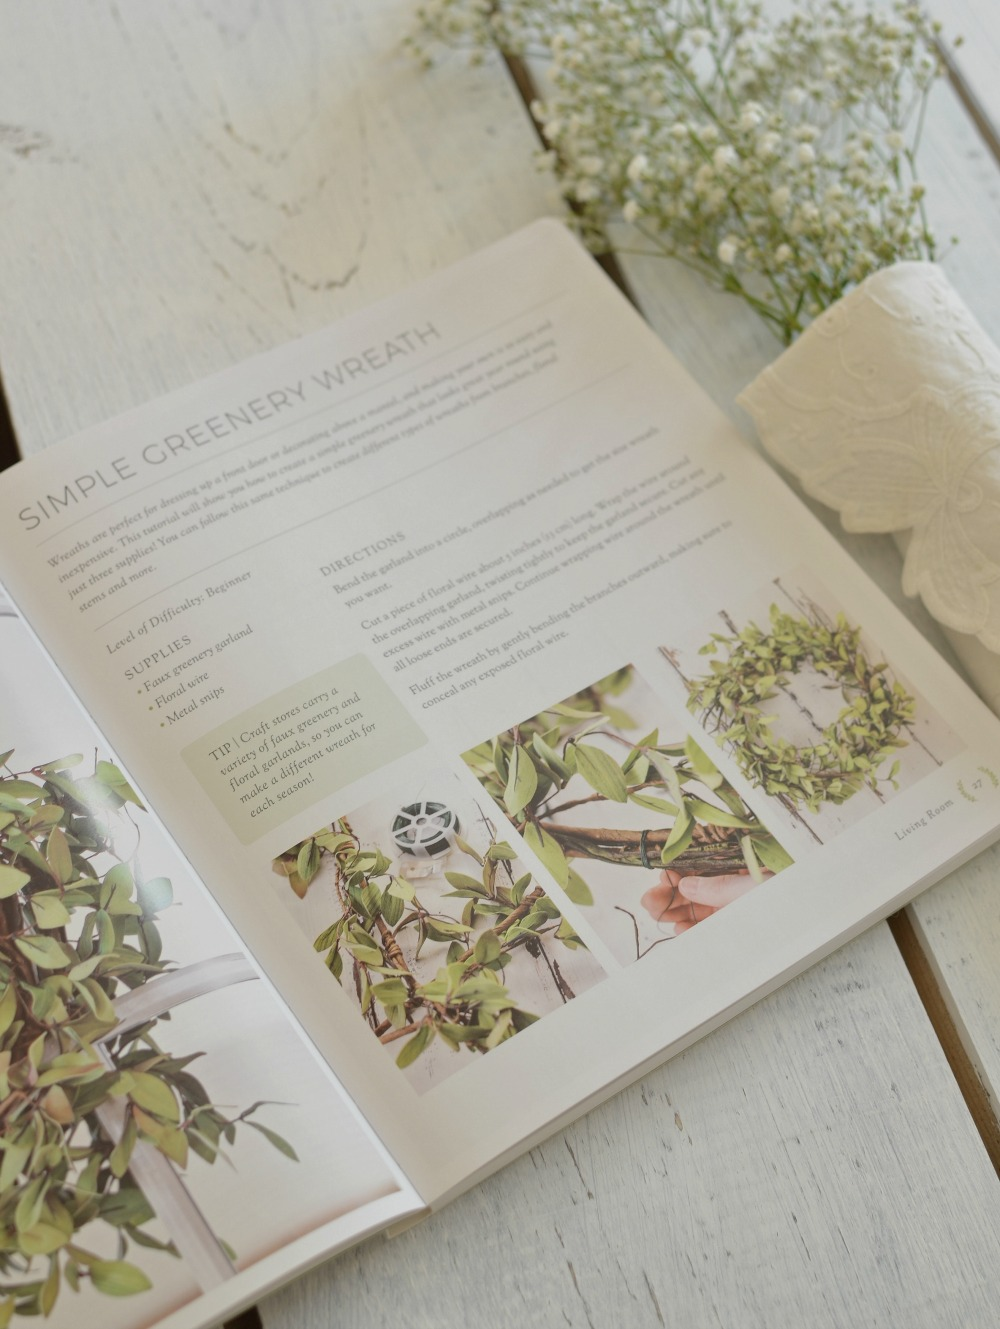 A Touch of Farmhouse Charm Book Review: Farmhouse Window Trim